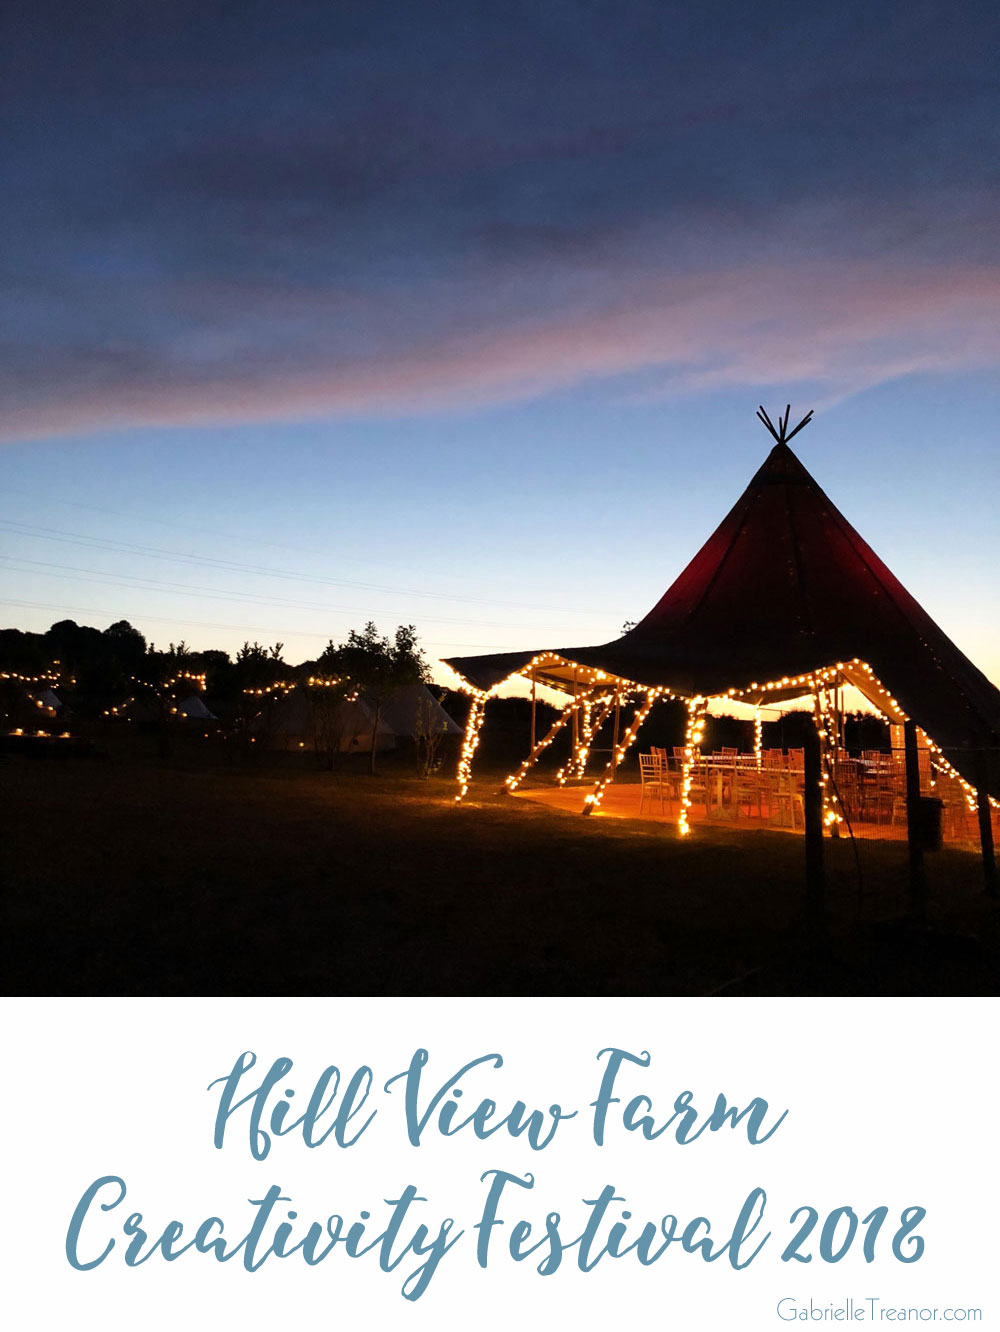 Hill View Farm Creativity Festival